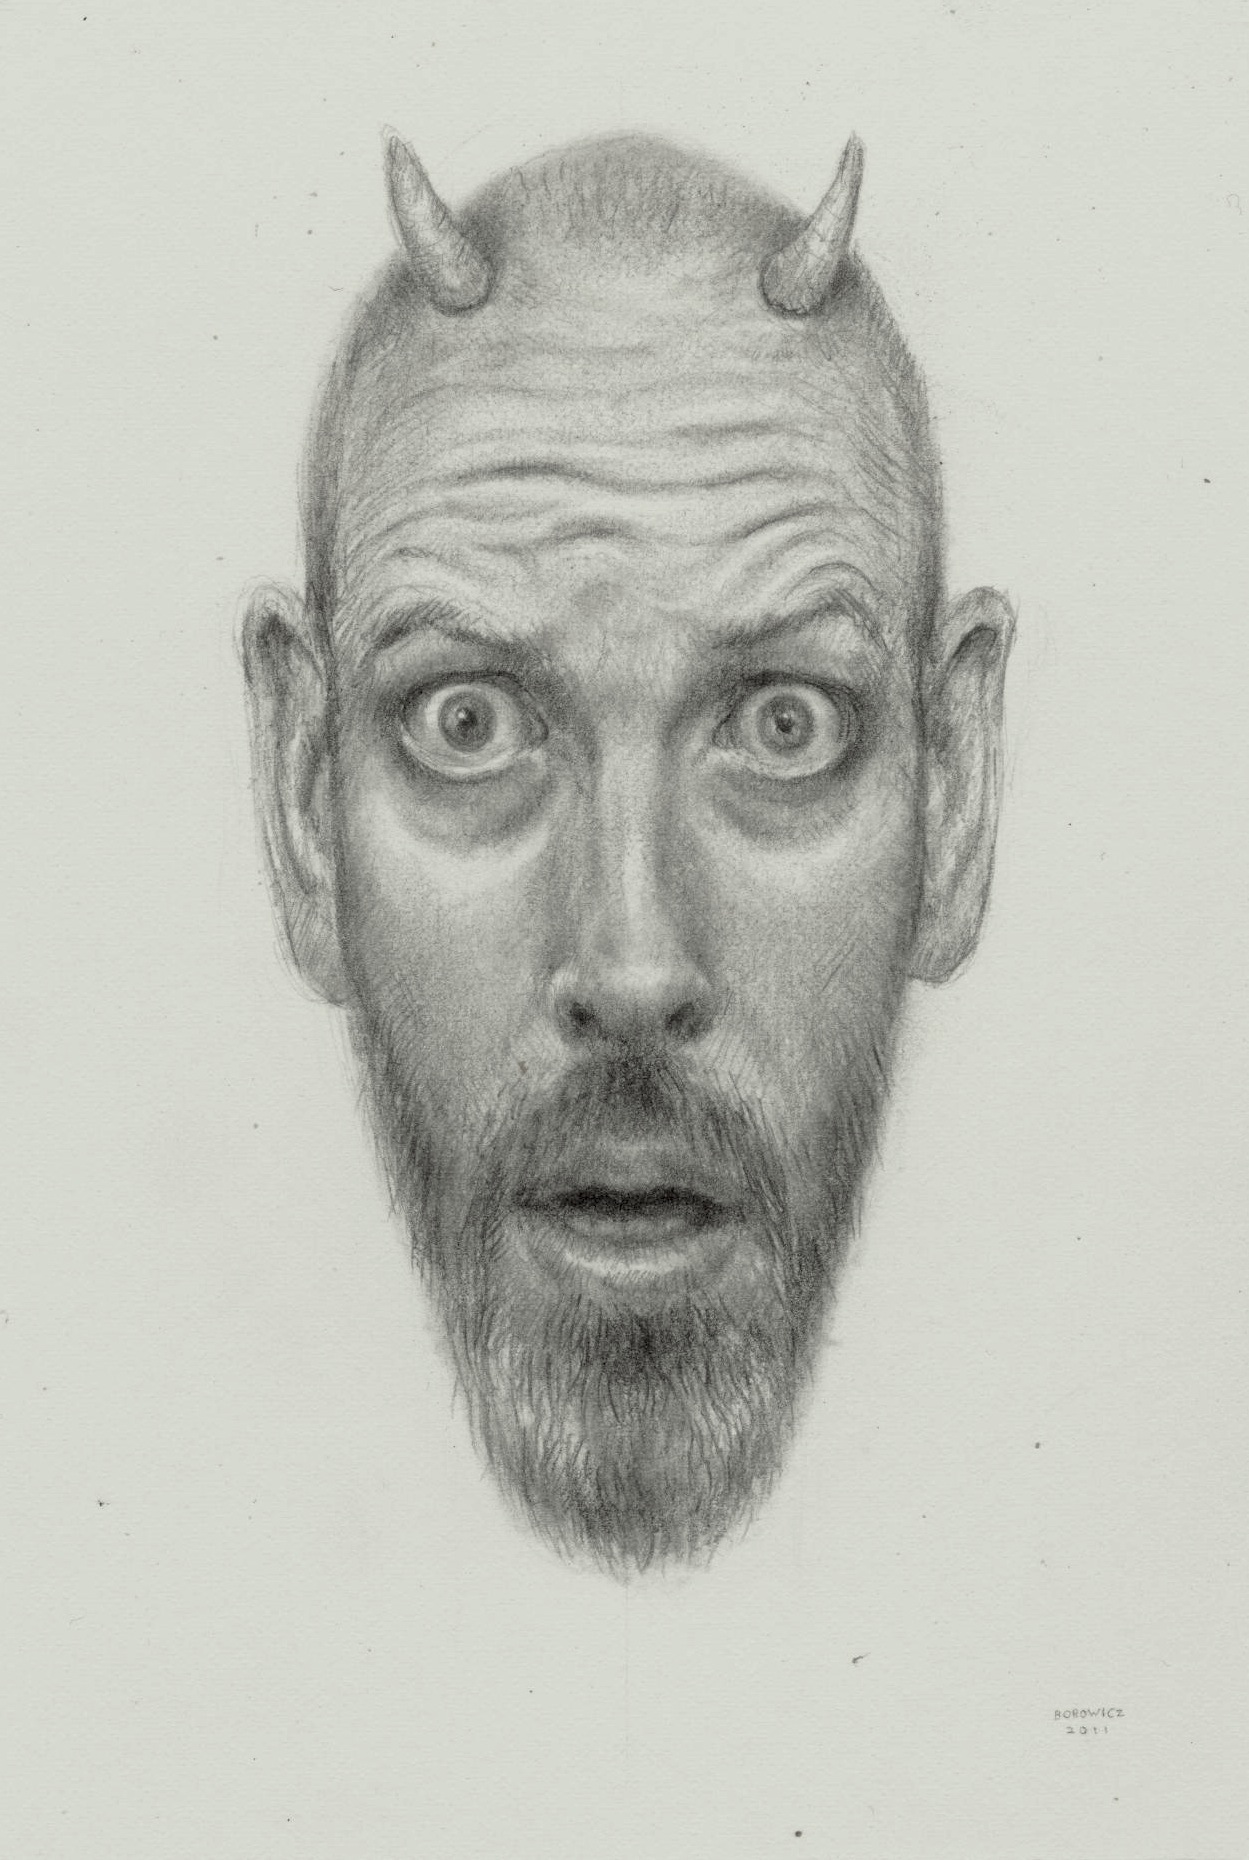 """Early the Next Morning   John Borowicz   graphite on paper, 6.25""""x4.25"""" 2012"""